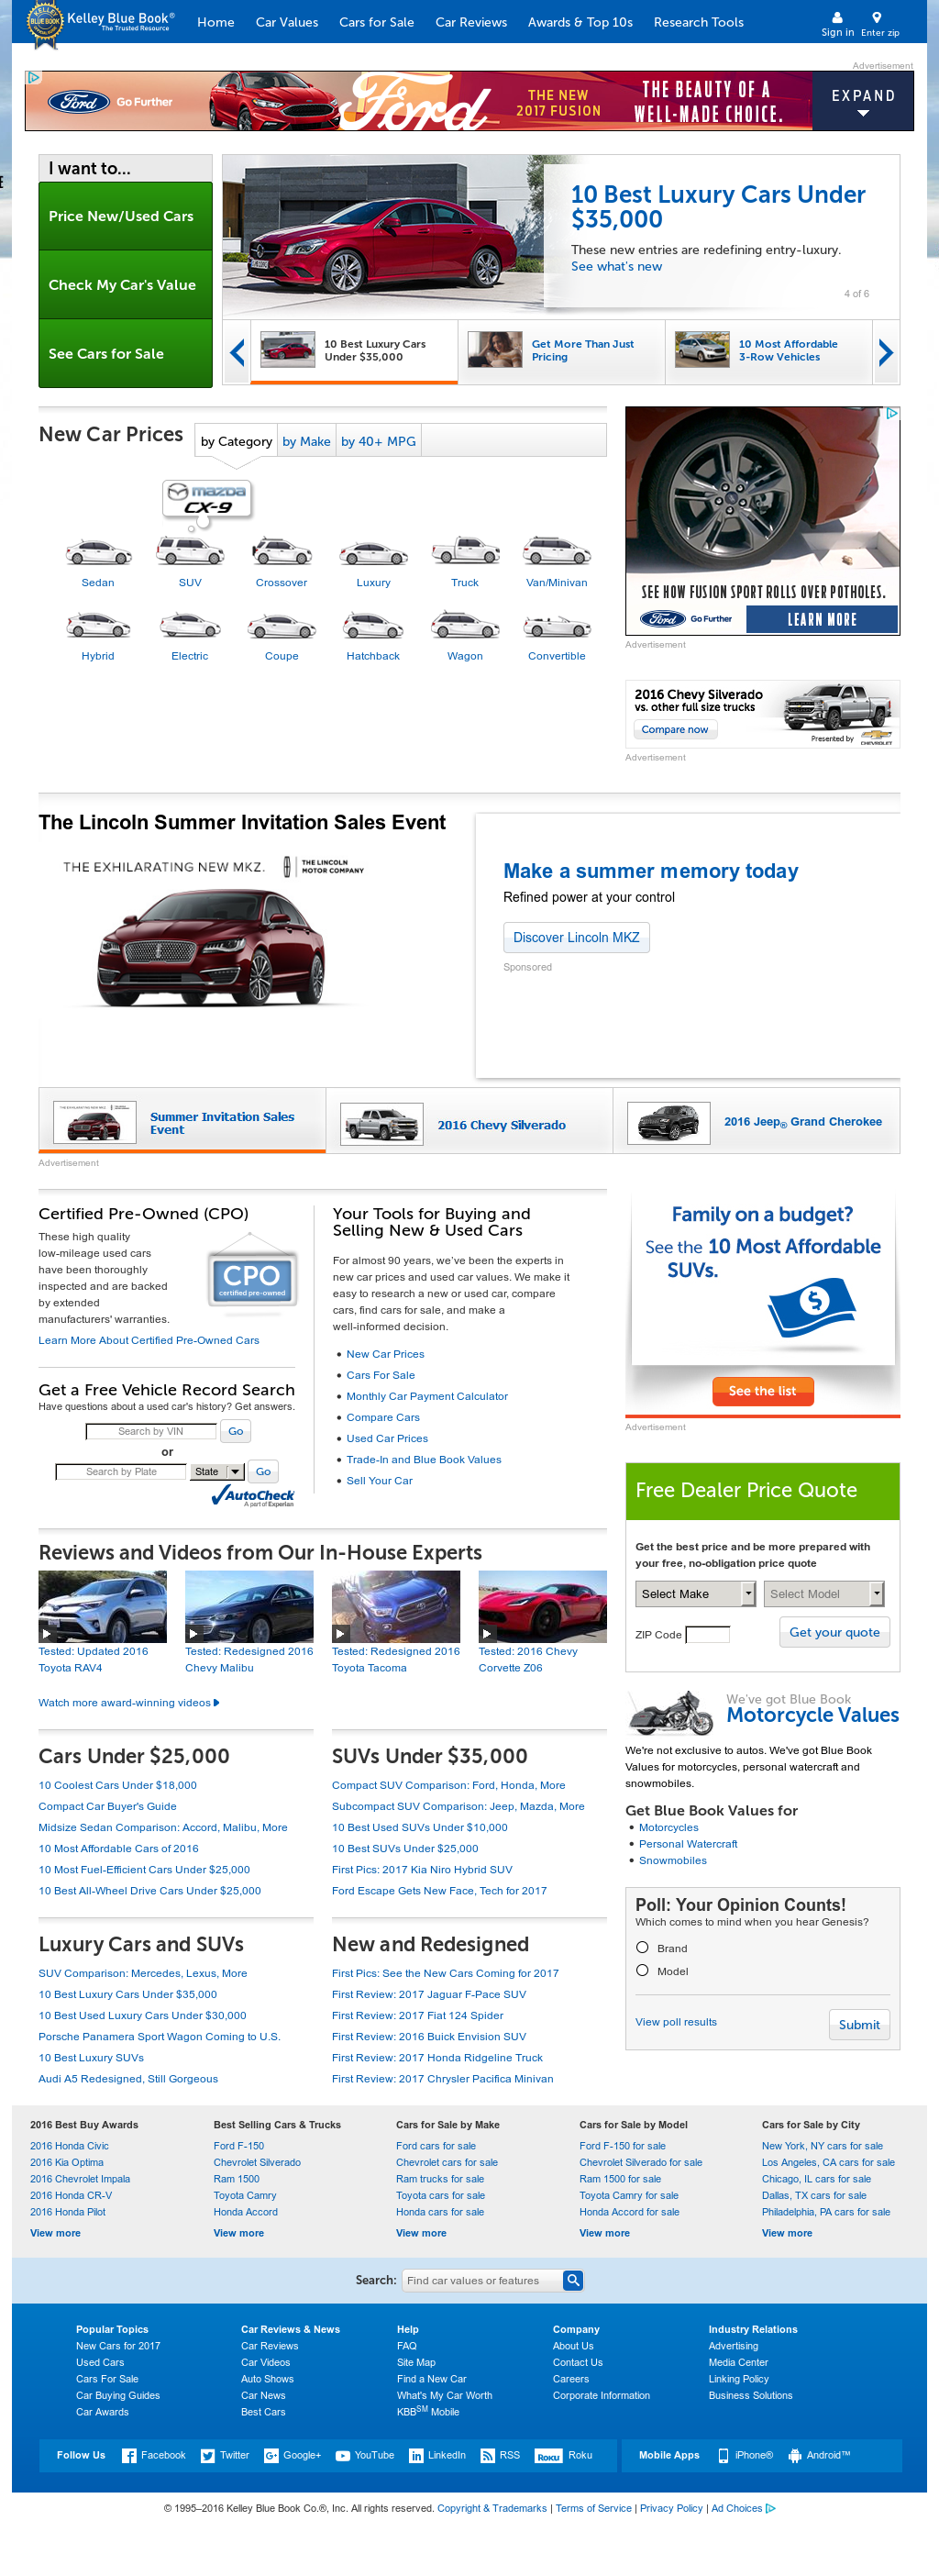 Kelley Blue Book Competitors, Revenue and Employees - Owler Company ...